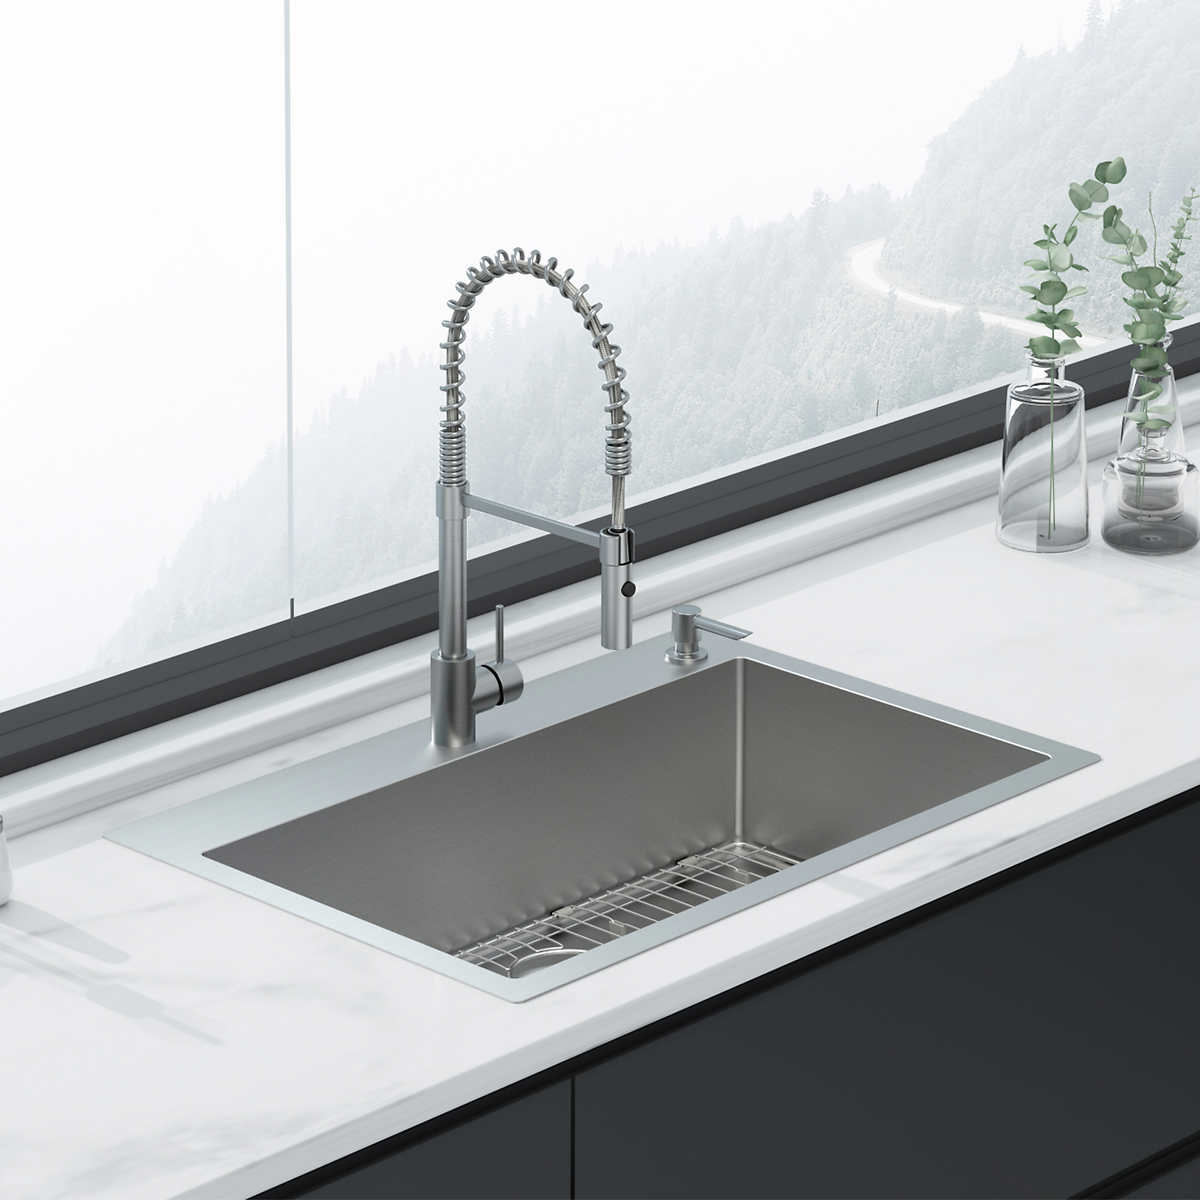 American Standard Culver Welded Kitchen Sink And Semi Pro Faucet Package